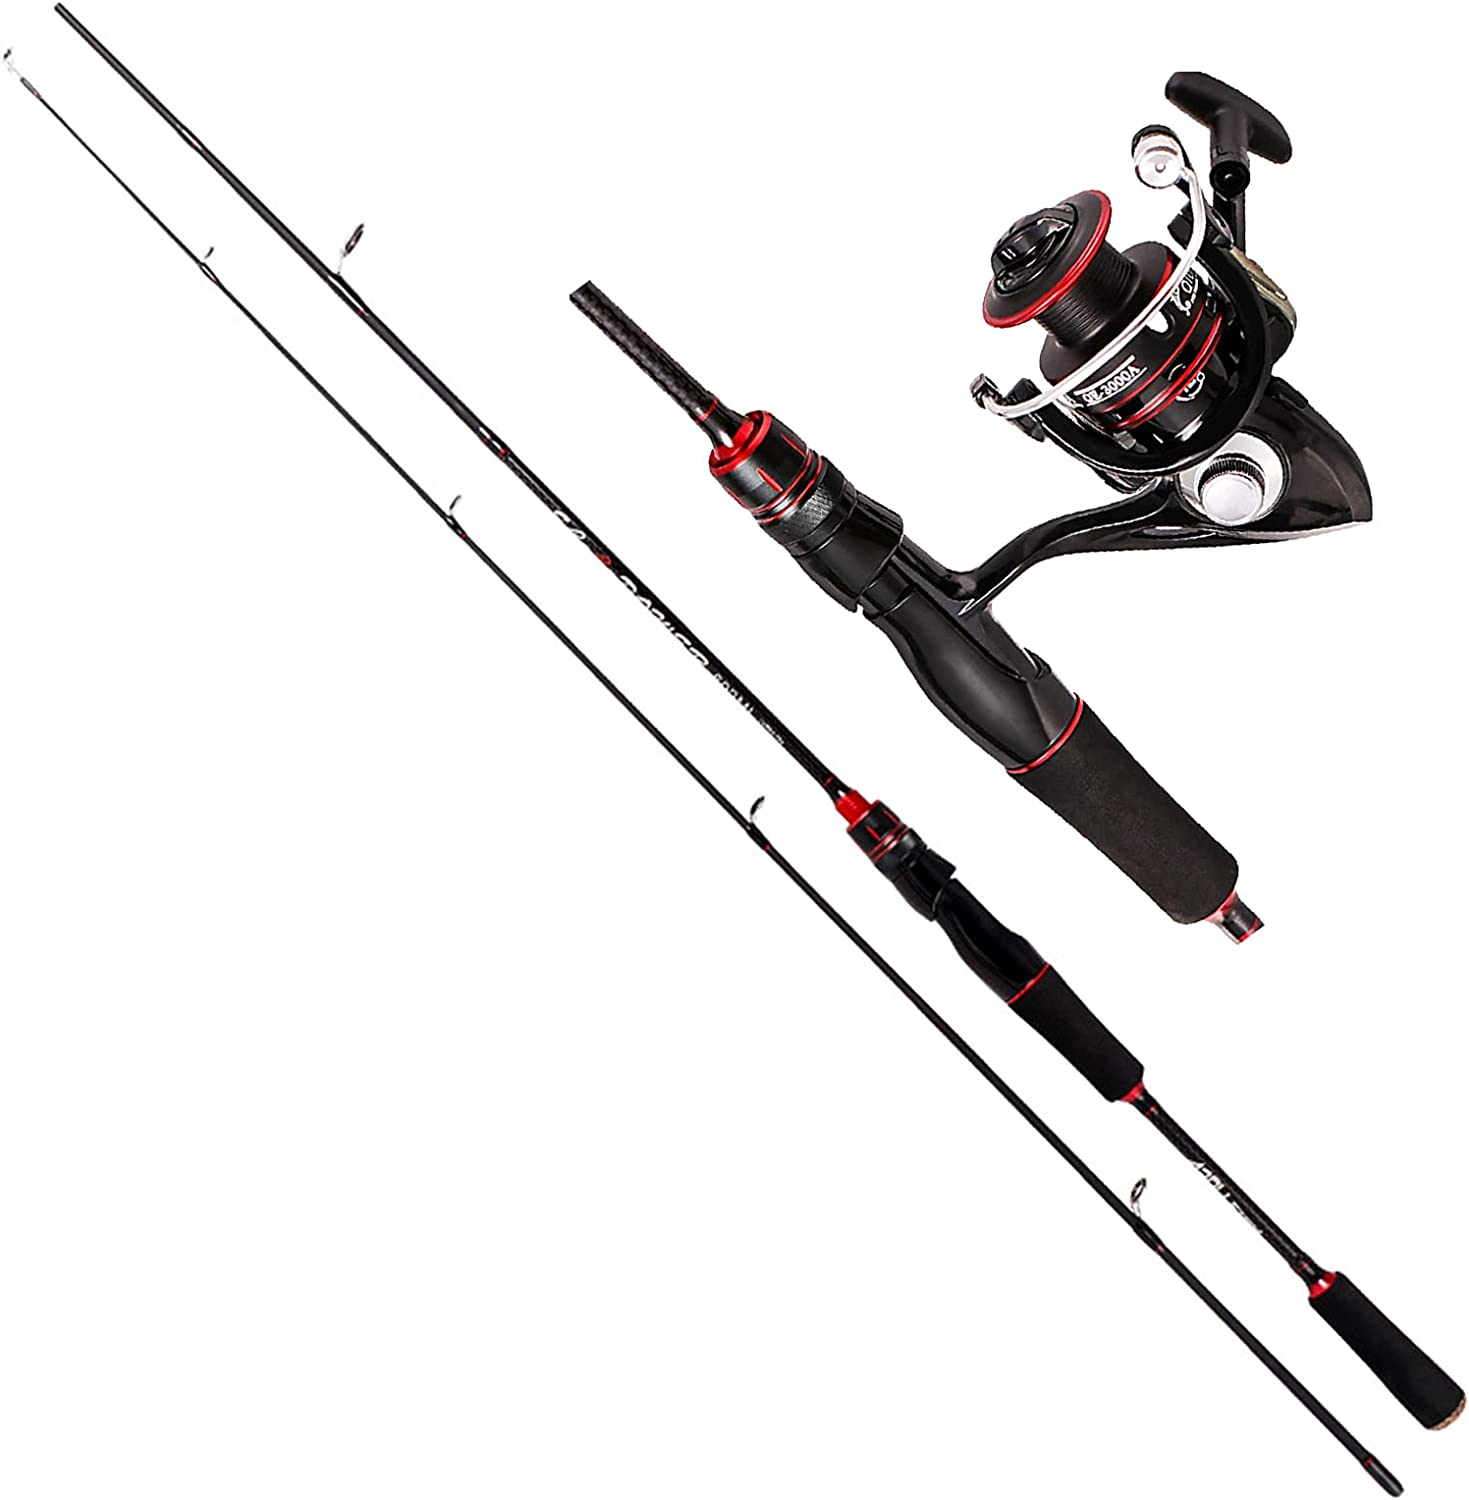 GvvcH Fishing price Challenge the lowest price of Japan ☆ Rod and Reel Pol Combo Ultralight Portable